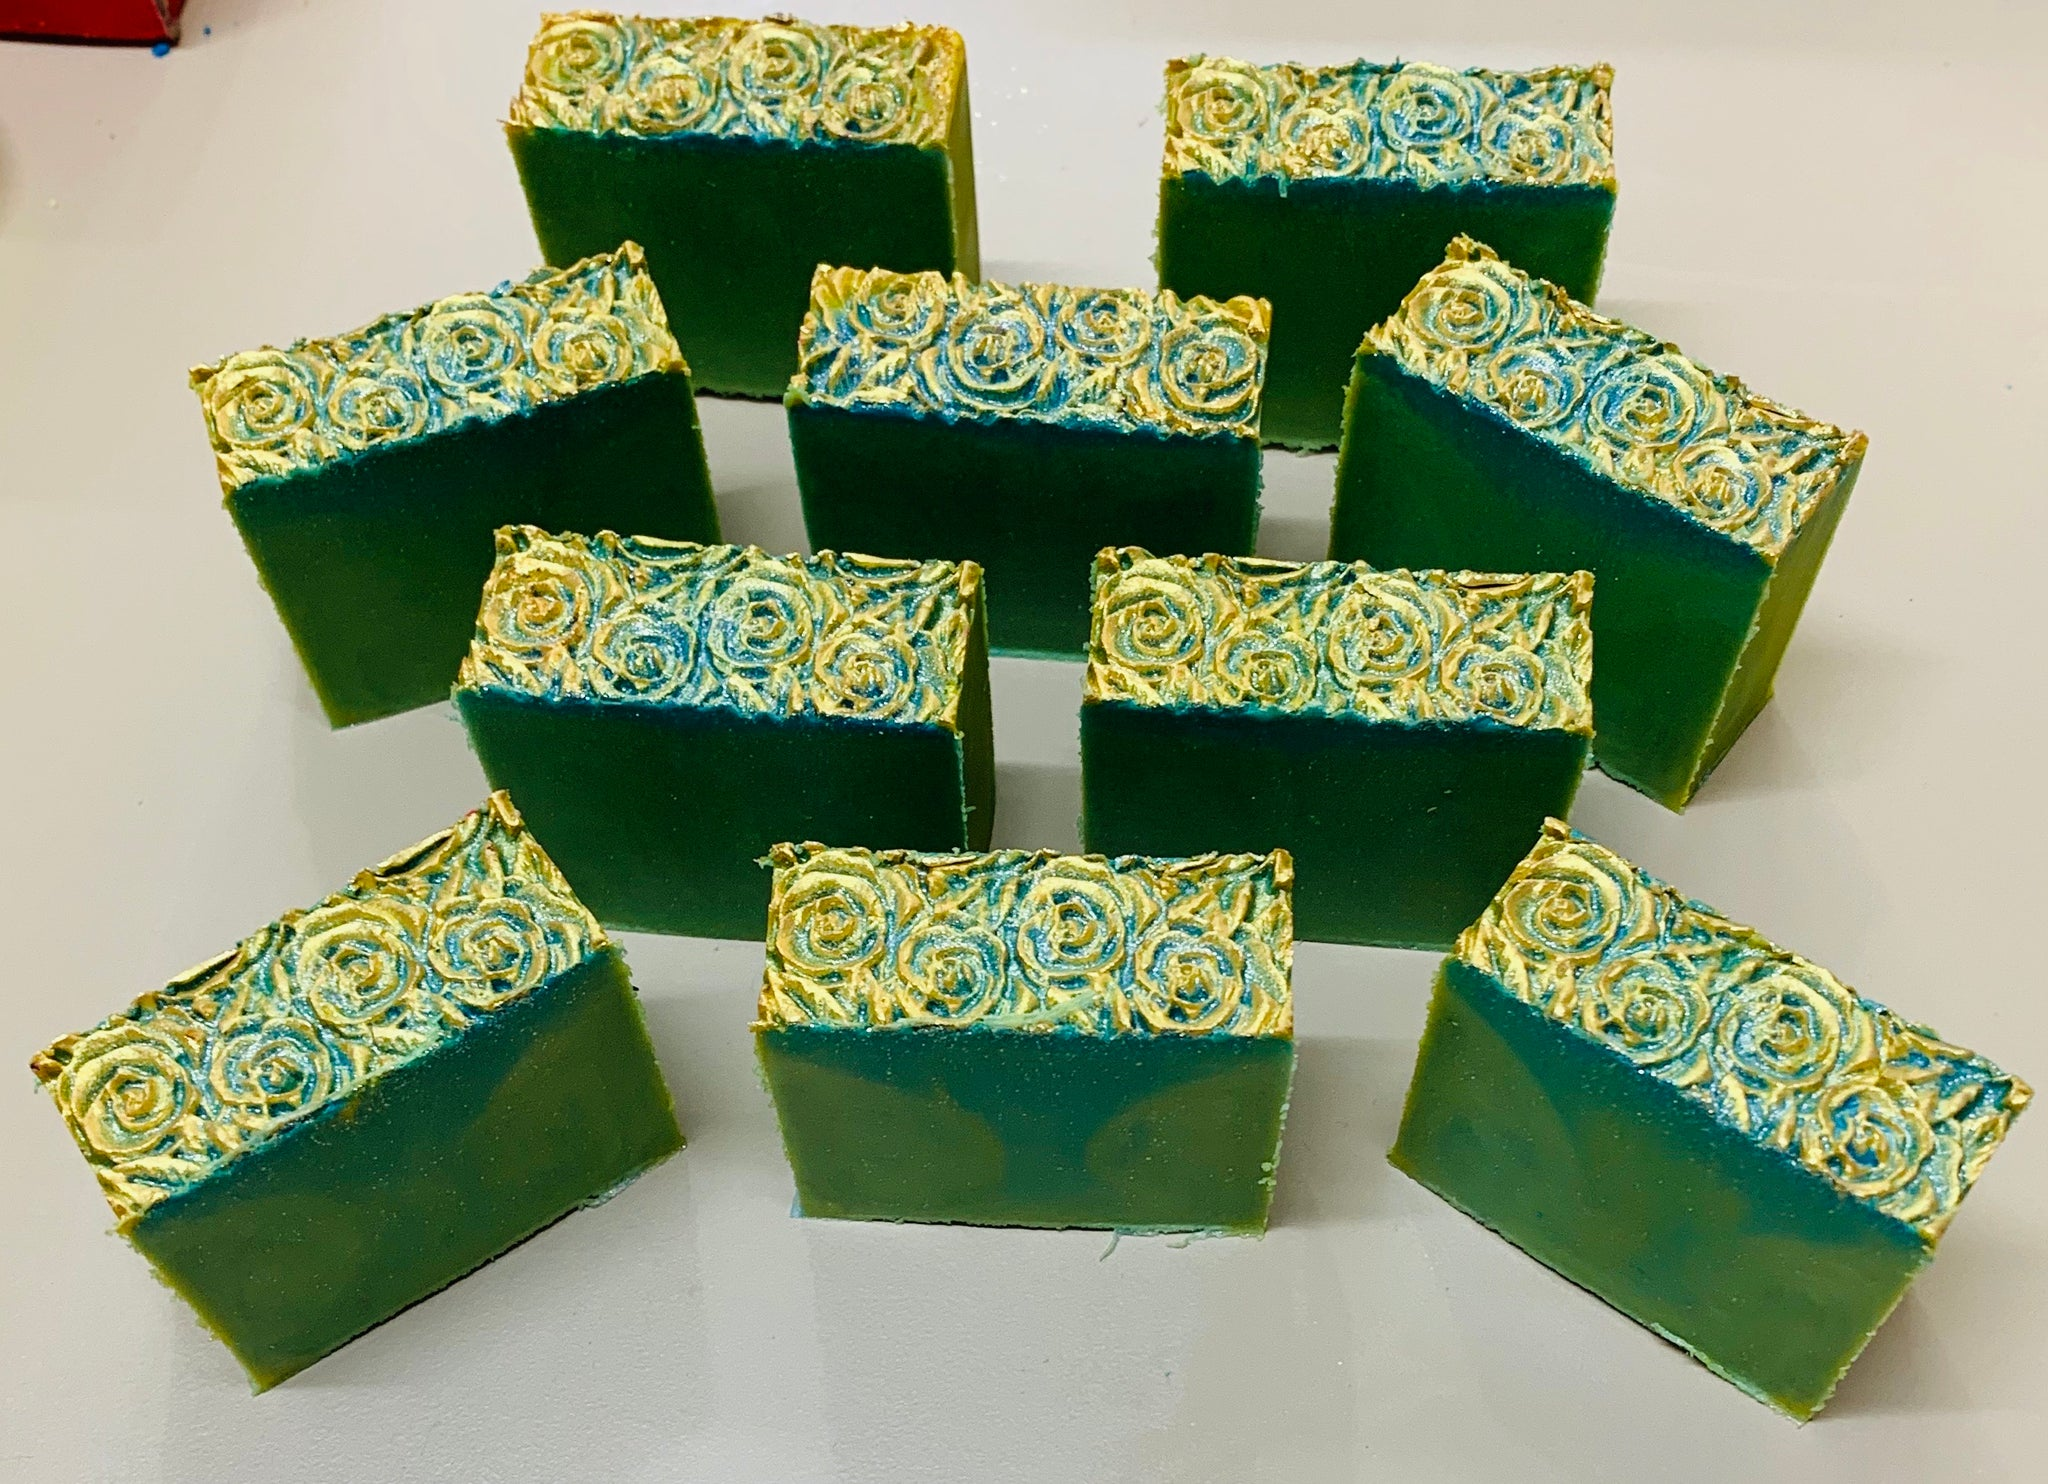 Dolce Vita (Limited Gold Edition) Handcrafted Soaps